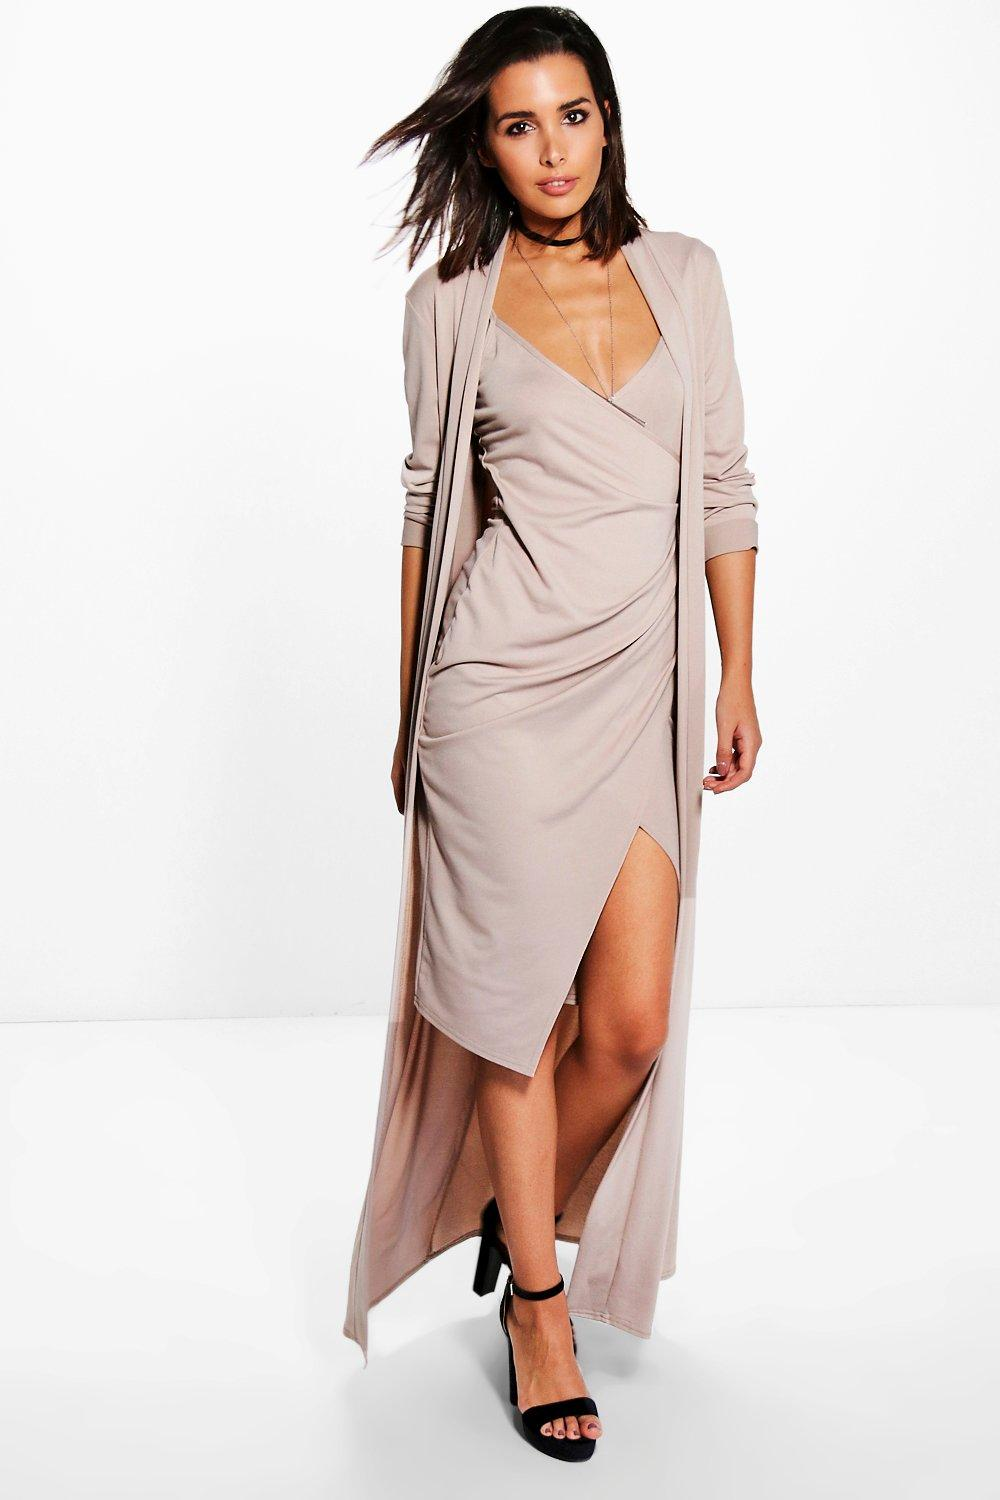 Isla Texture Wrap Midi Dress Co-ord